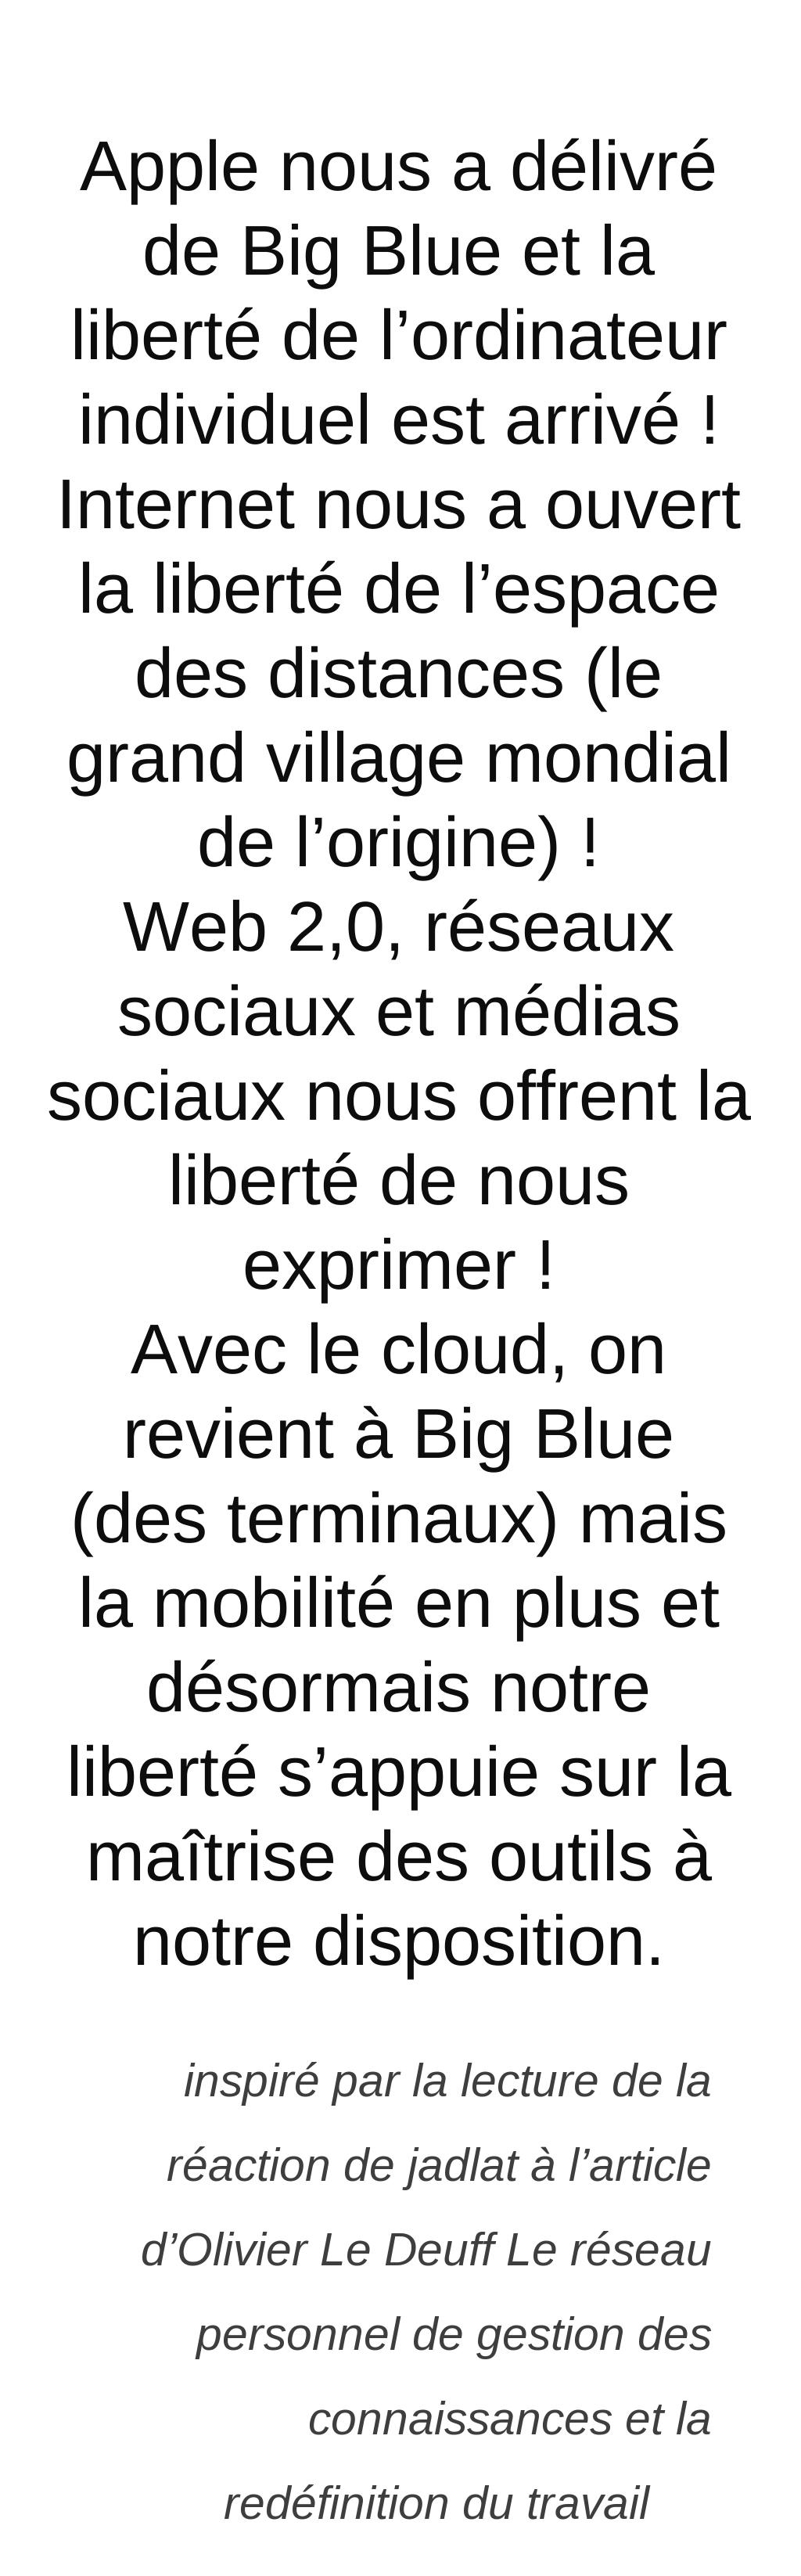 Via http://erdelcroix.tumblr.com/post/40712467172/apple-nous-a-delivre-de-big-blue-et-la-liberte-de  This quote courtesy of @Pinstamatic (http://pinstamatic.com)